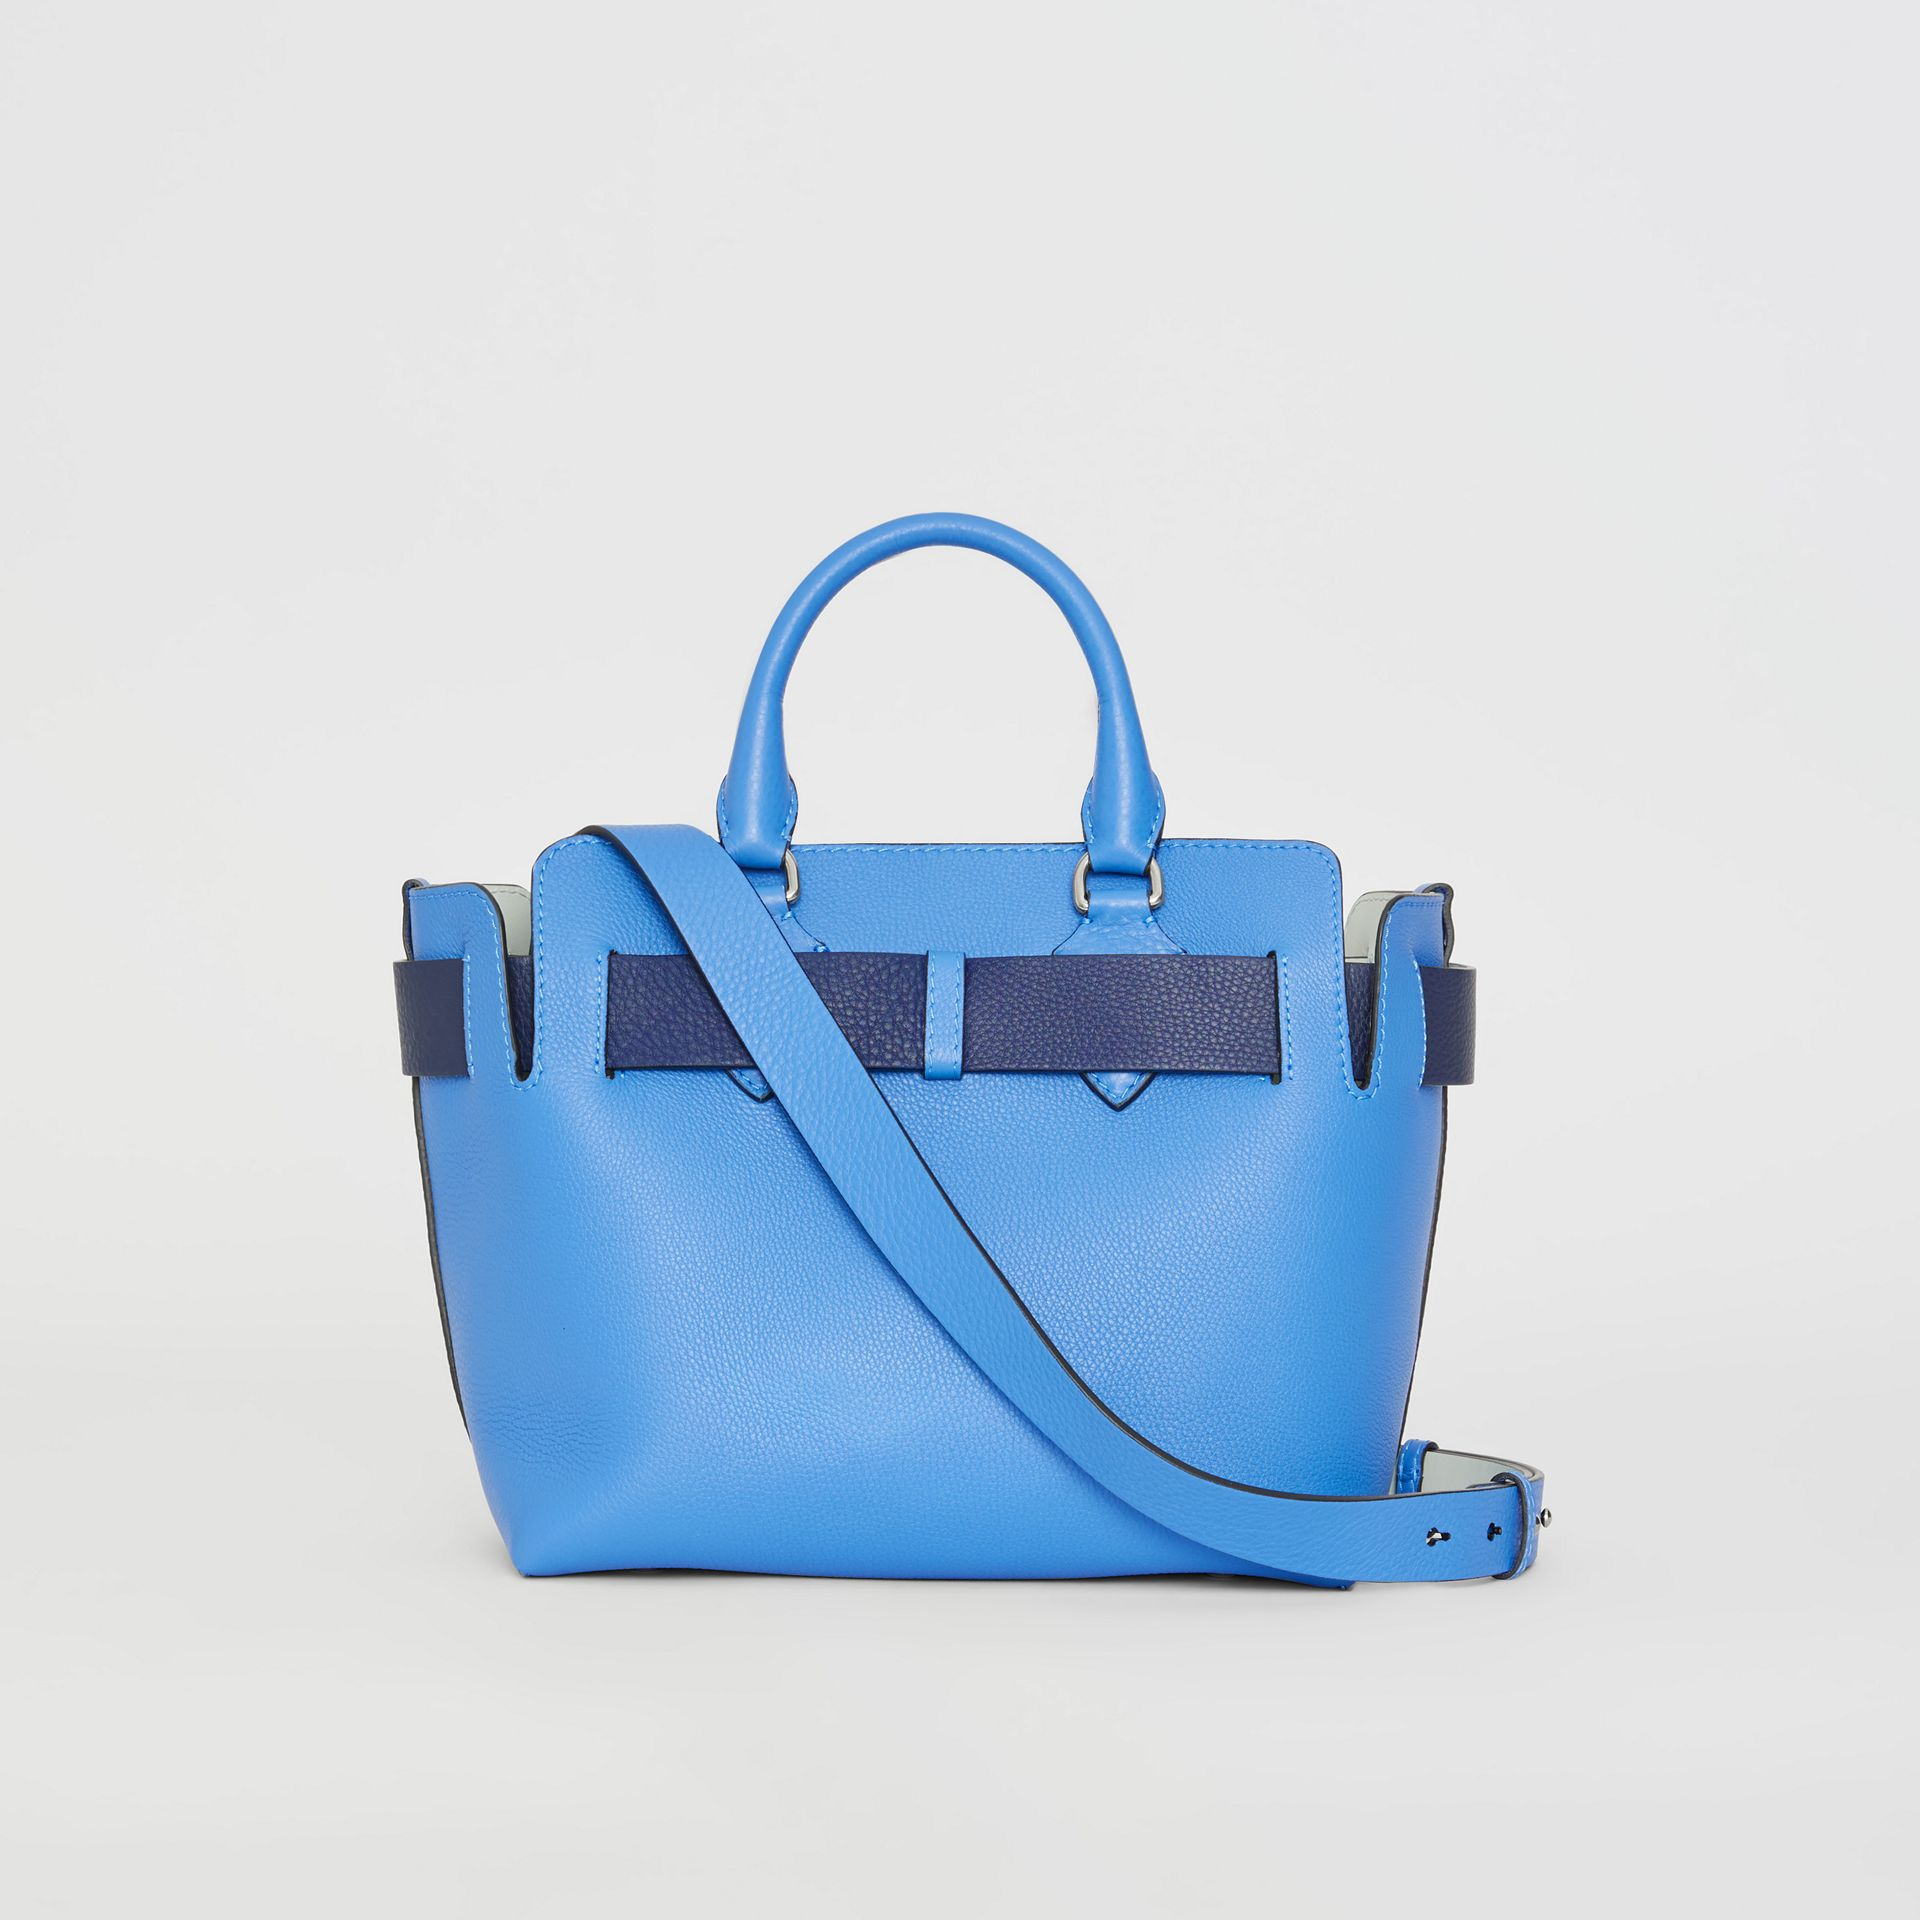 Petit sac The Belt en cuir (Bleu Hortensia) - Femme | Burberry Canada - photo de la galerie 7